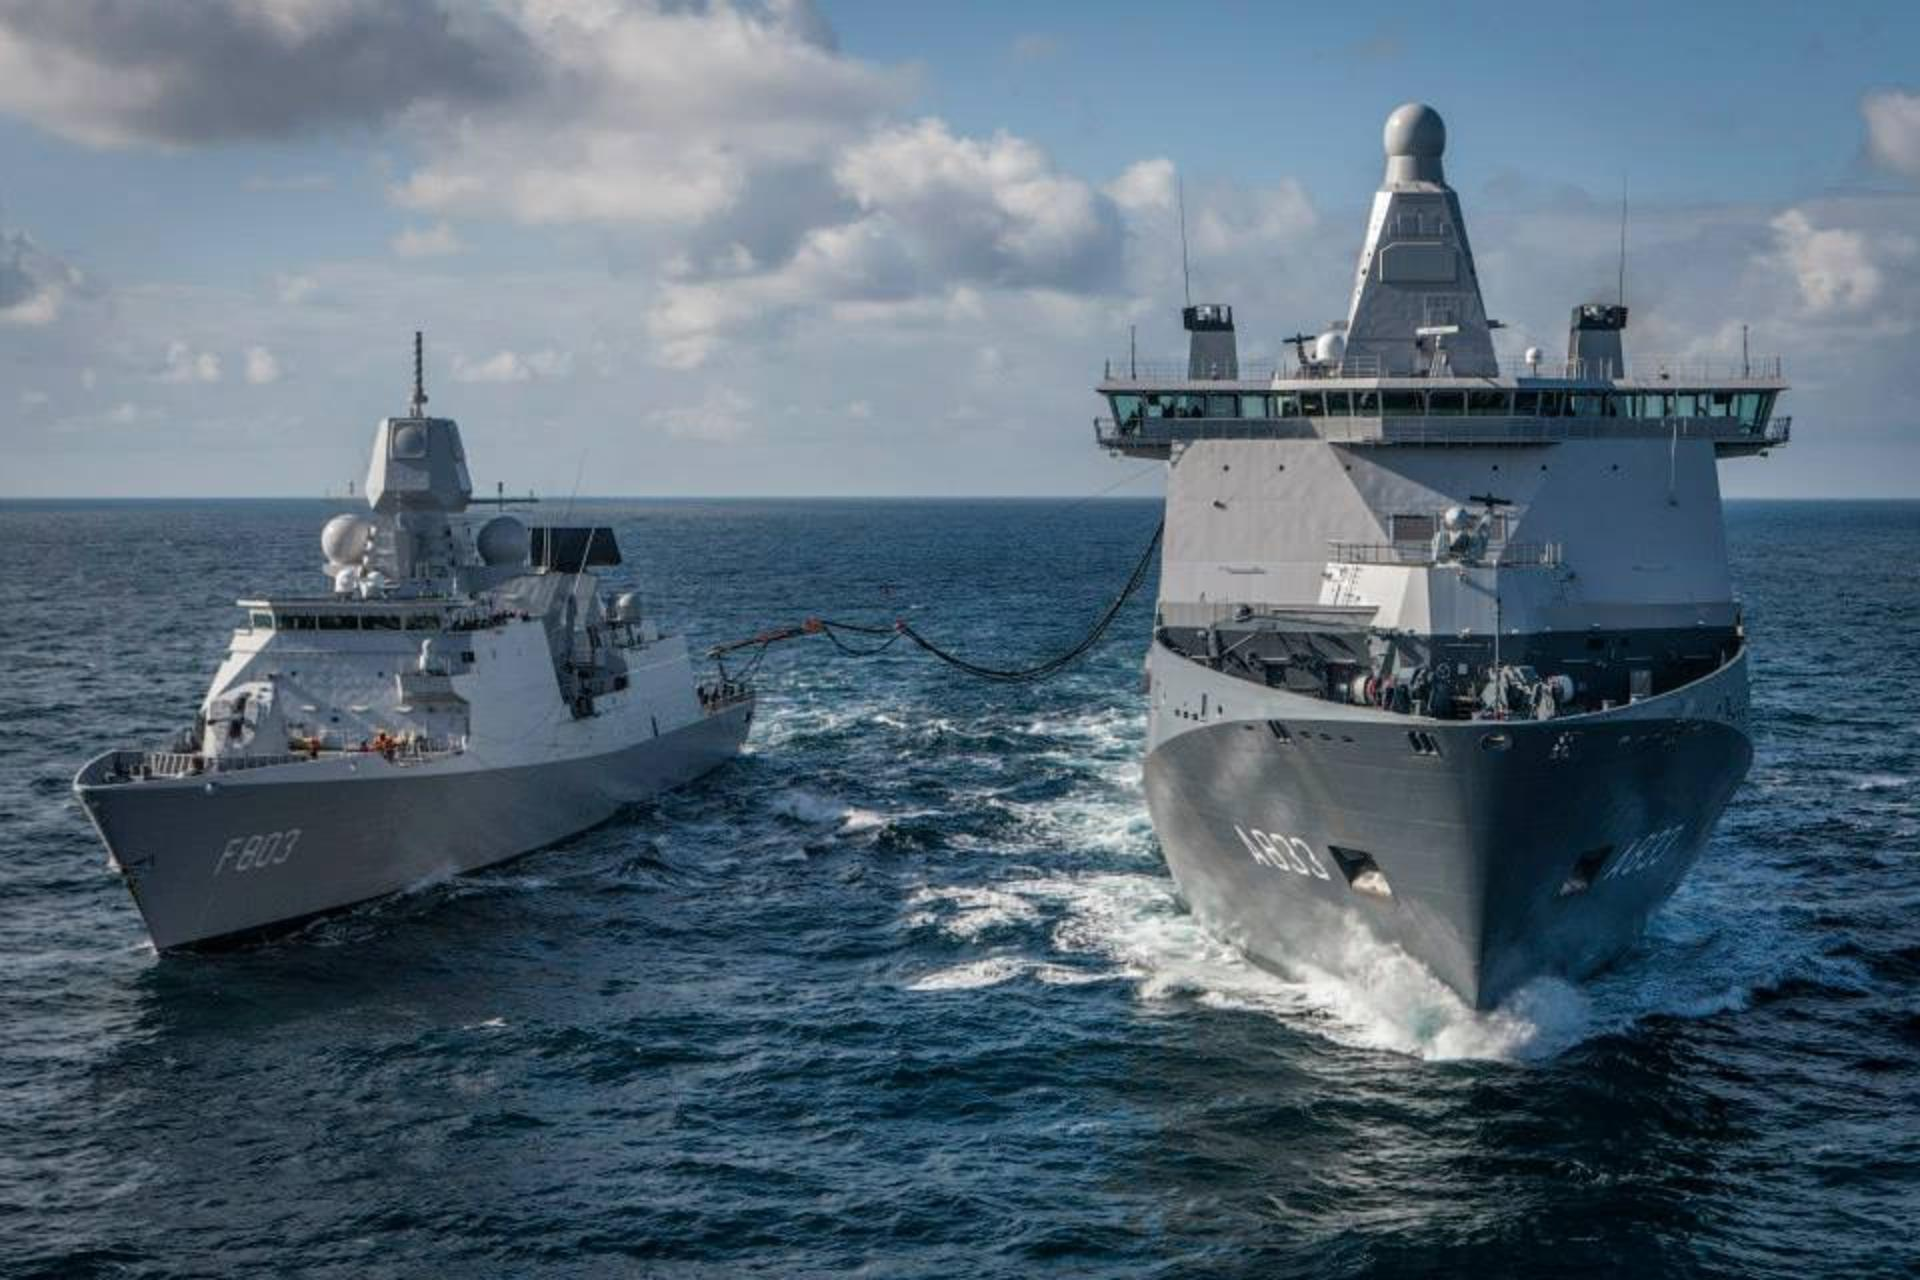 Karel Doorman refuels HNLMS Tromp